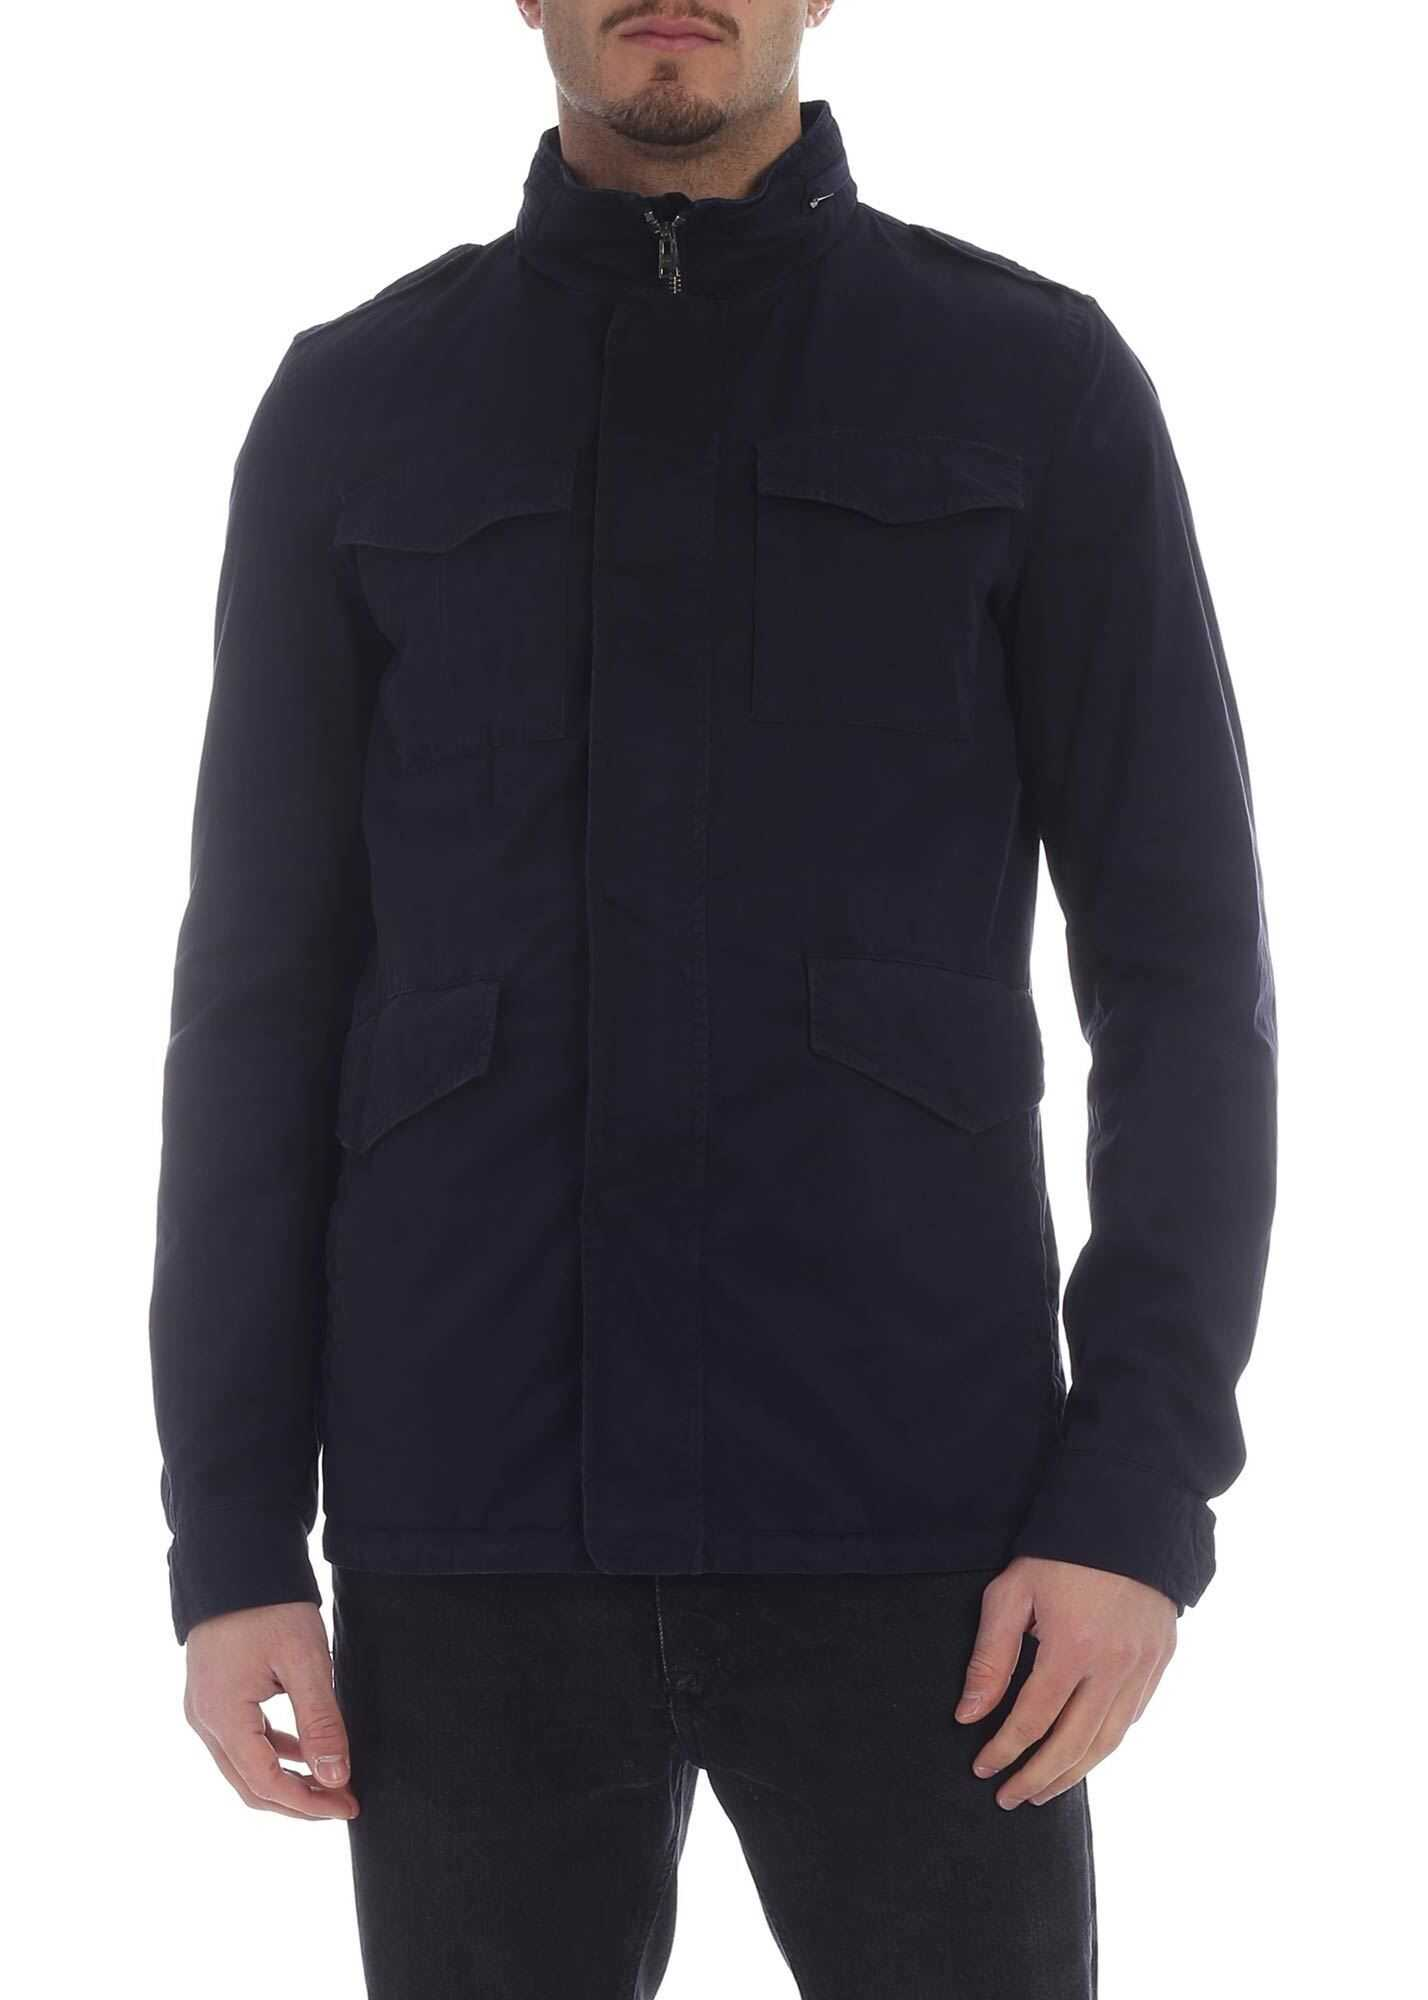 Blue Jacket With Front Pockets